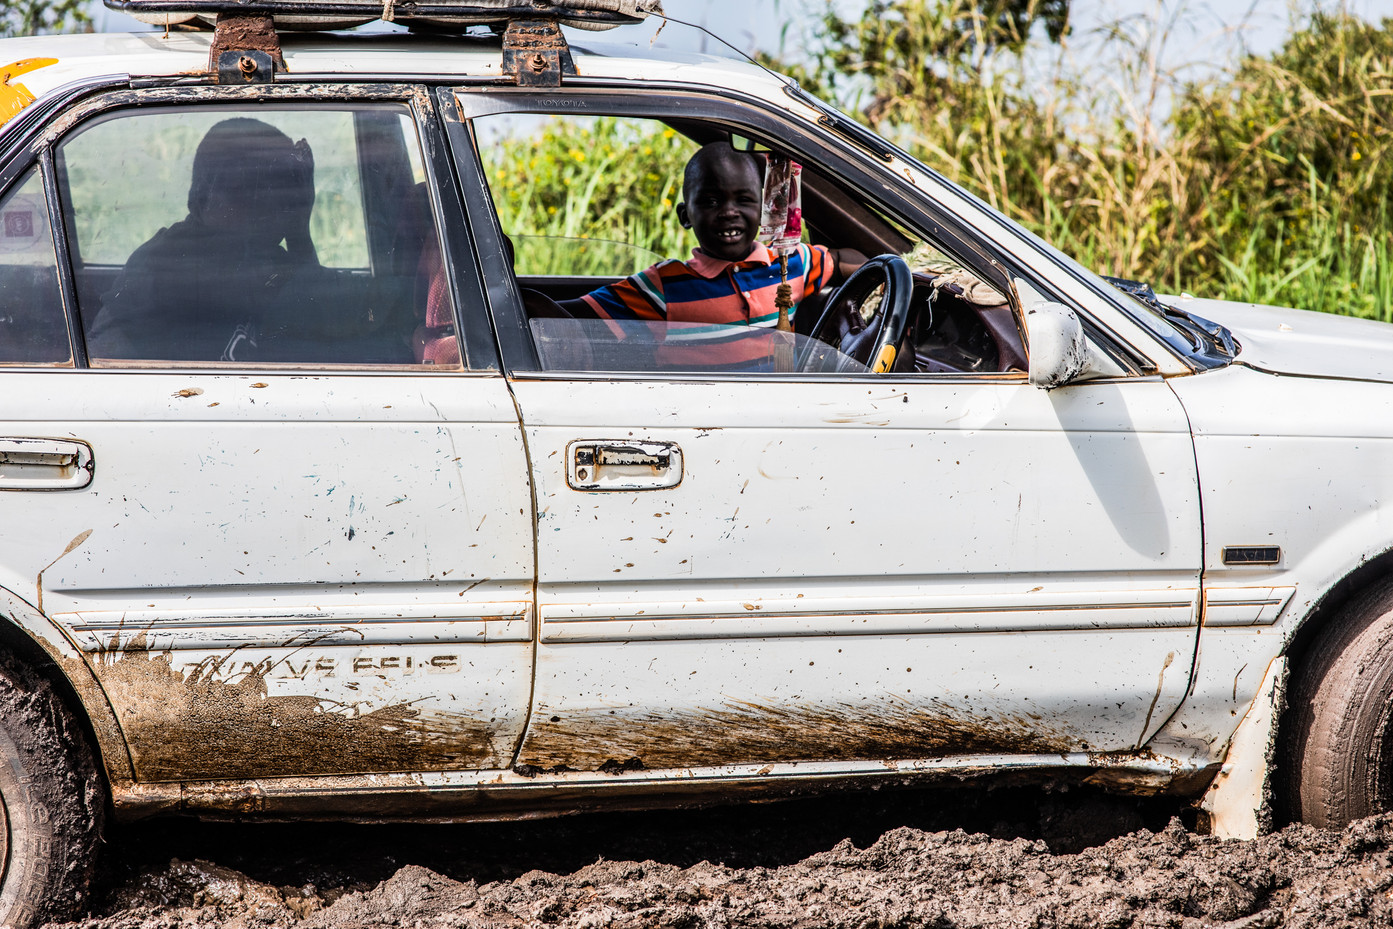 A car on it's way to border  to pick up somethind and is being stuck in a mud.